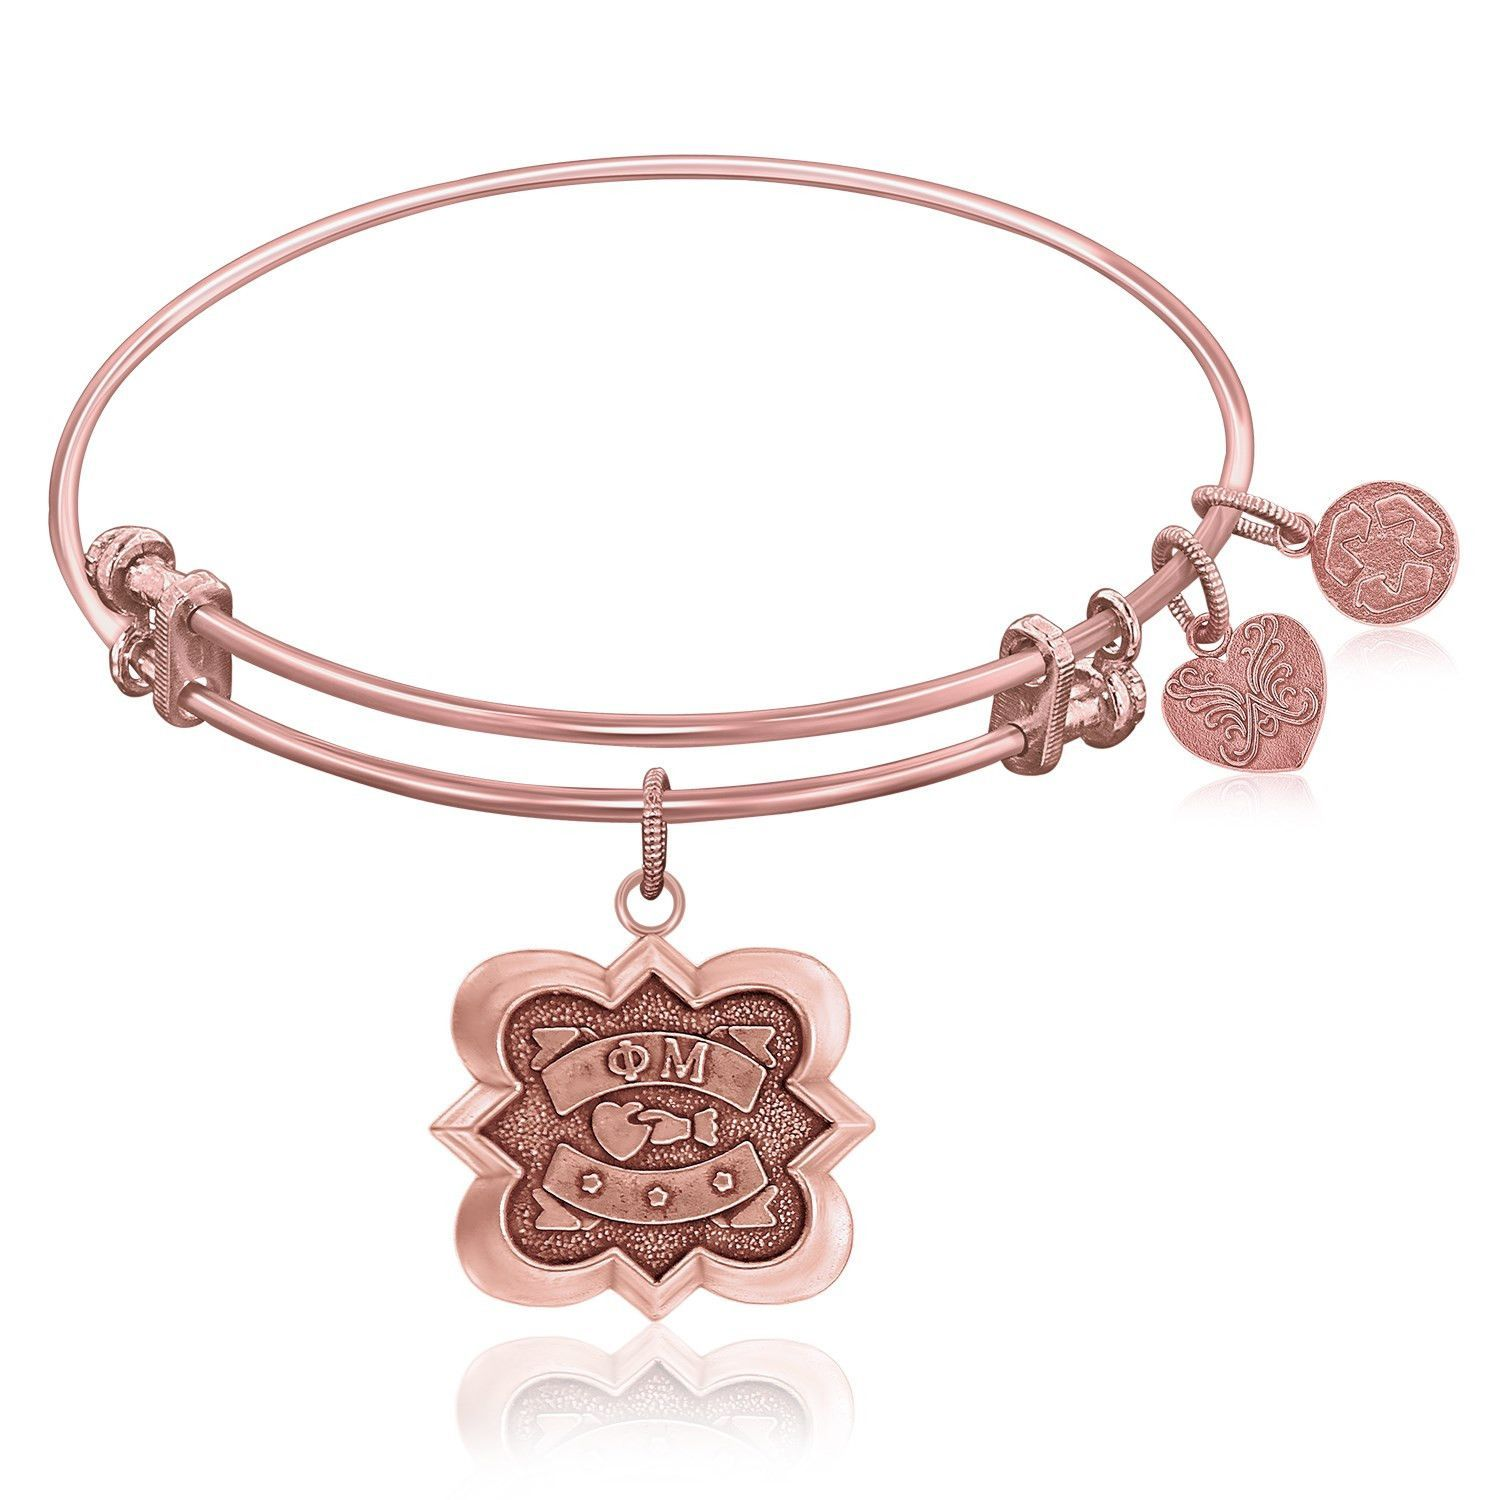 Expandable bangle in pink tone brass with phi mu symbol expandable bangle in pink tone brass with phi mu symbol biocorpaavc Images